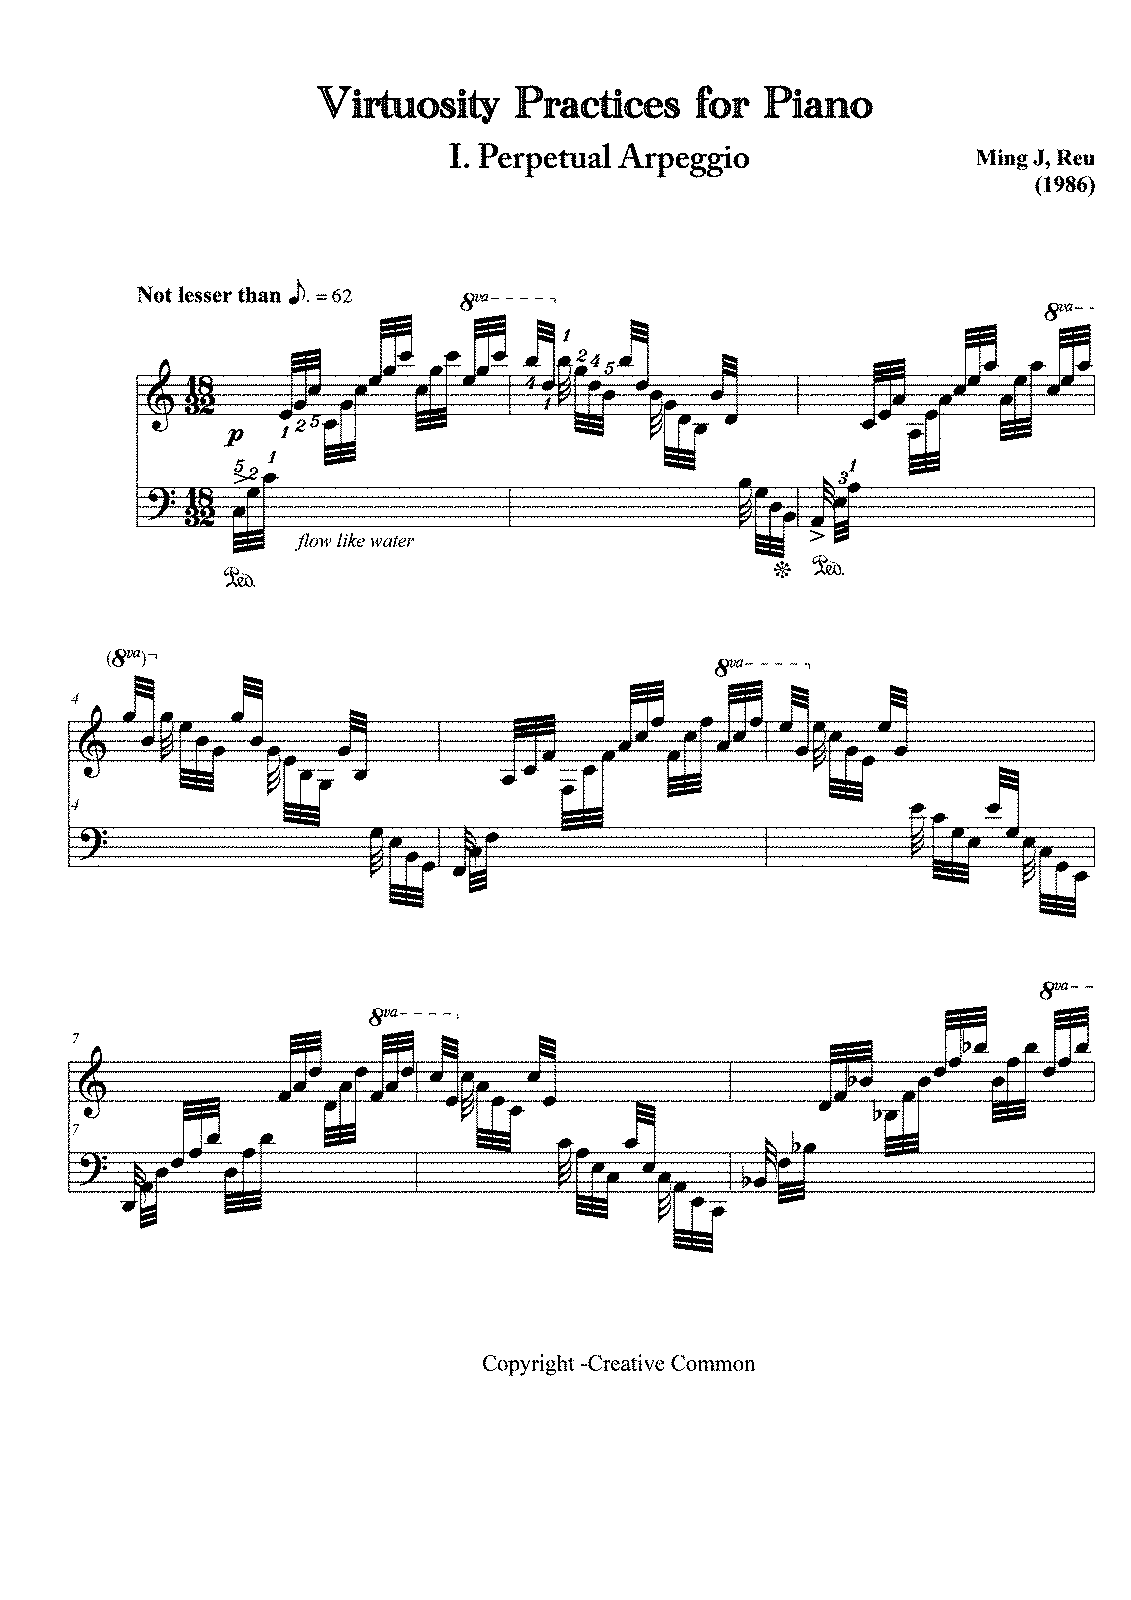 PMLP140905-Virtuosity Practices for Piano No.1 Perpetual Arpeggio.pdf